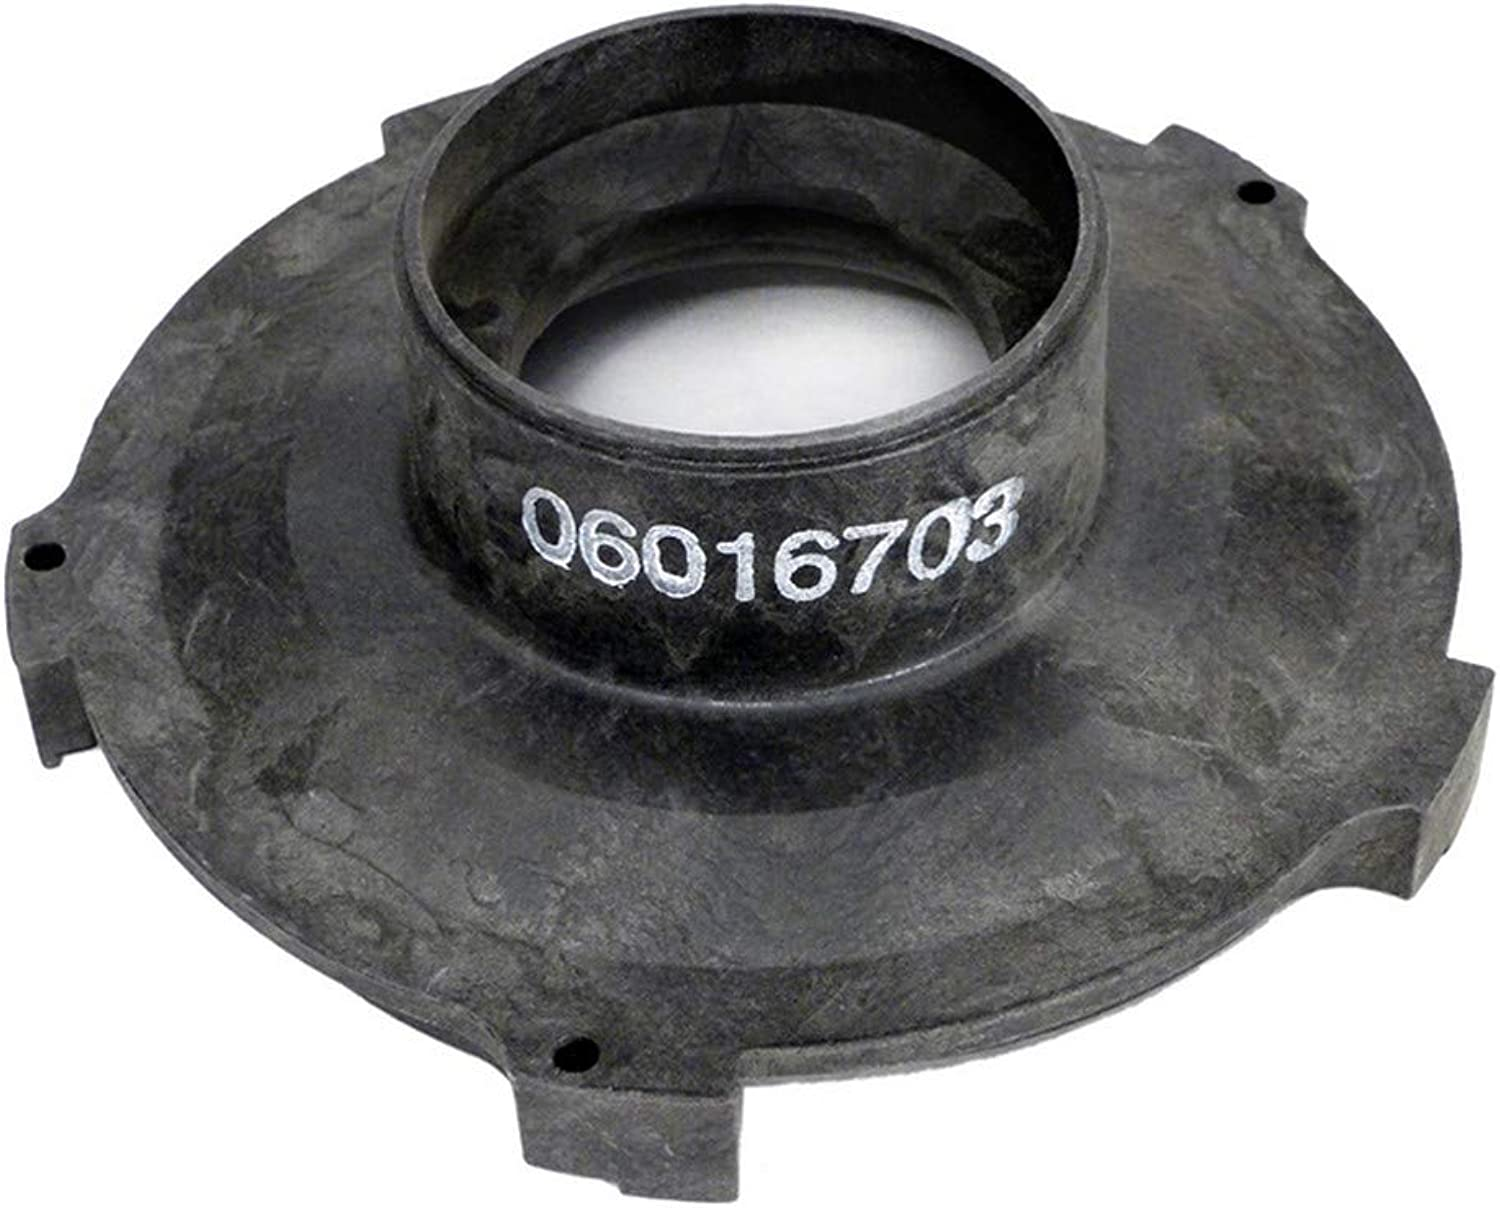 Jacuzzi 06016703R 0.75 1HP Diffuser